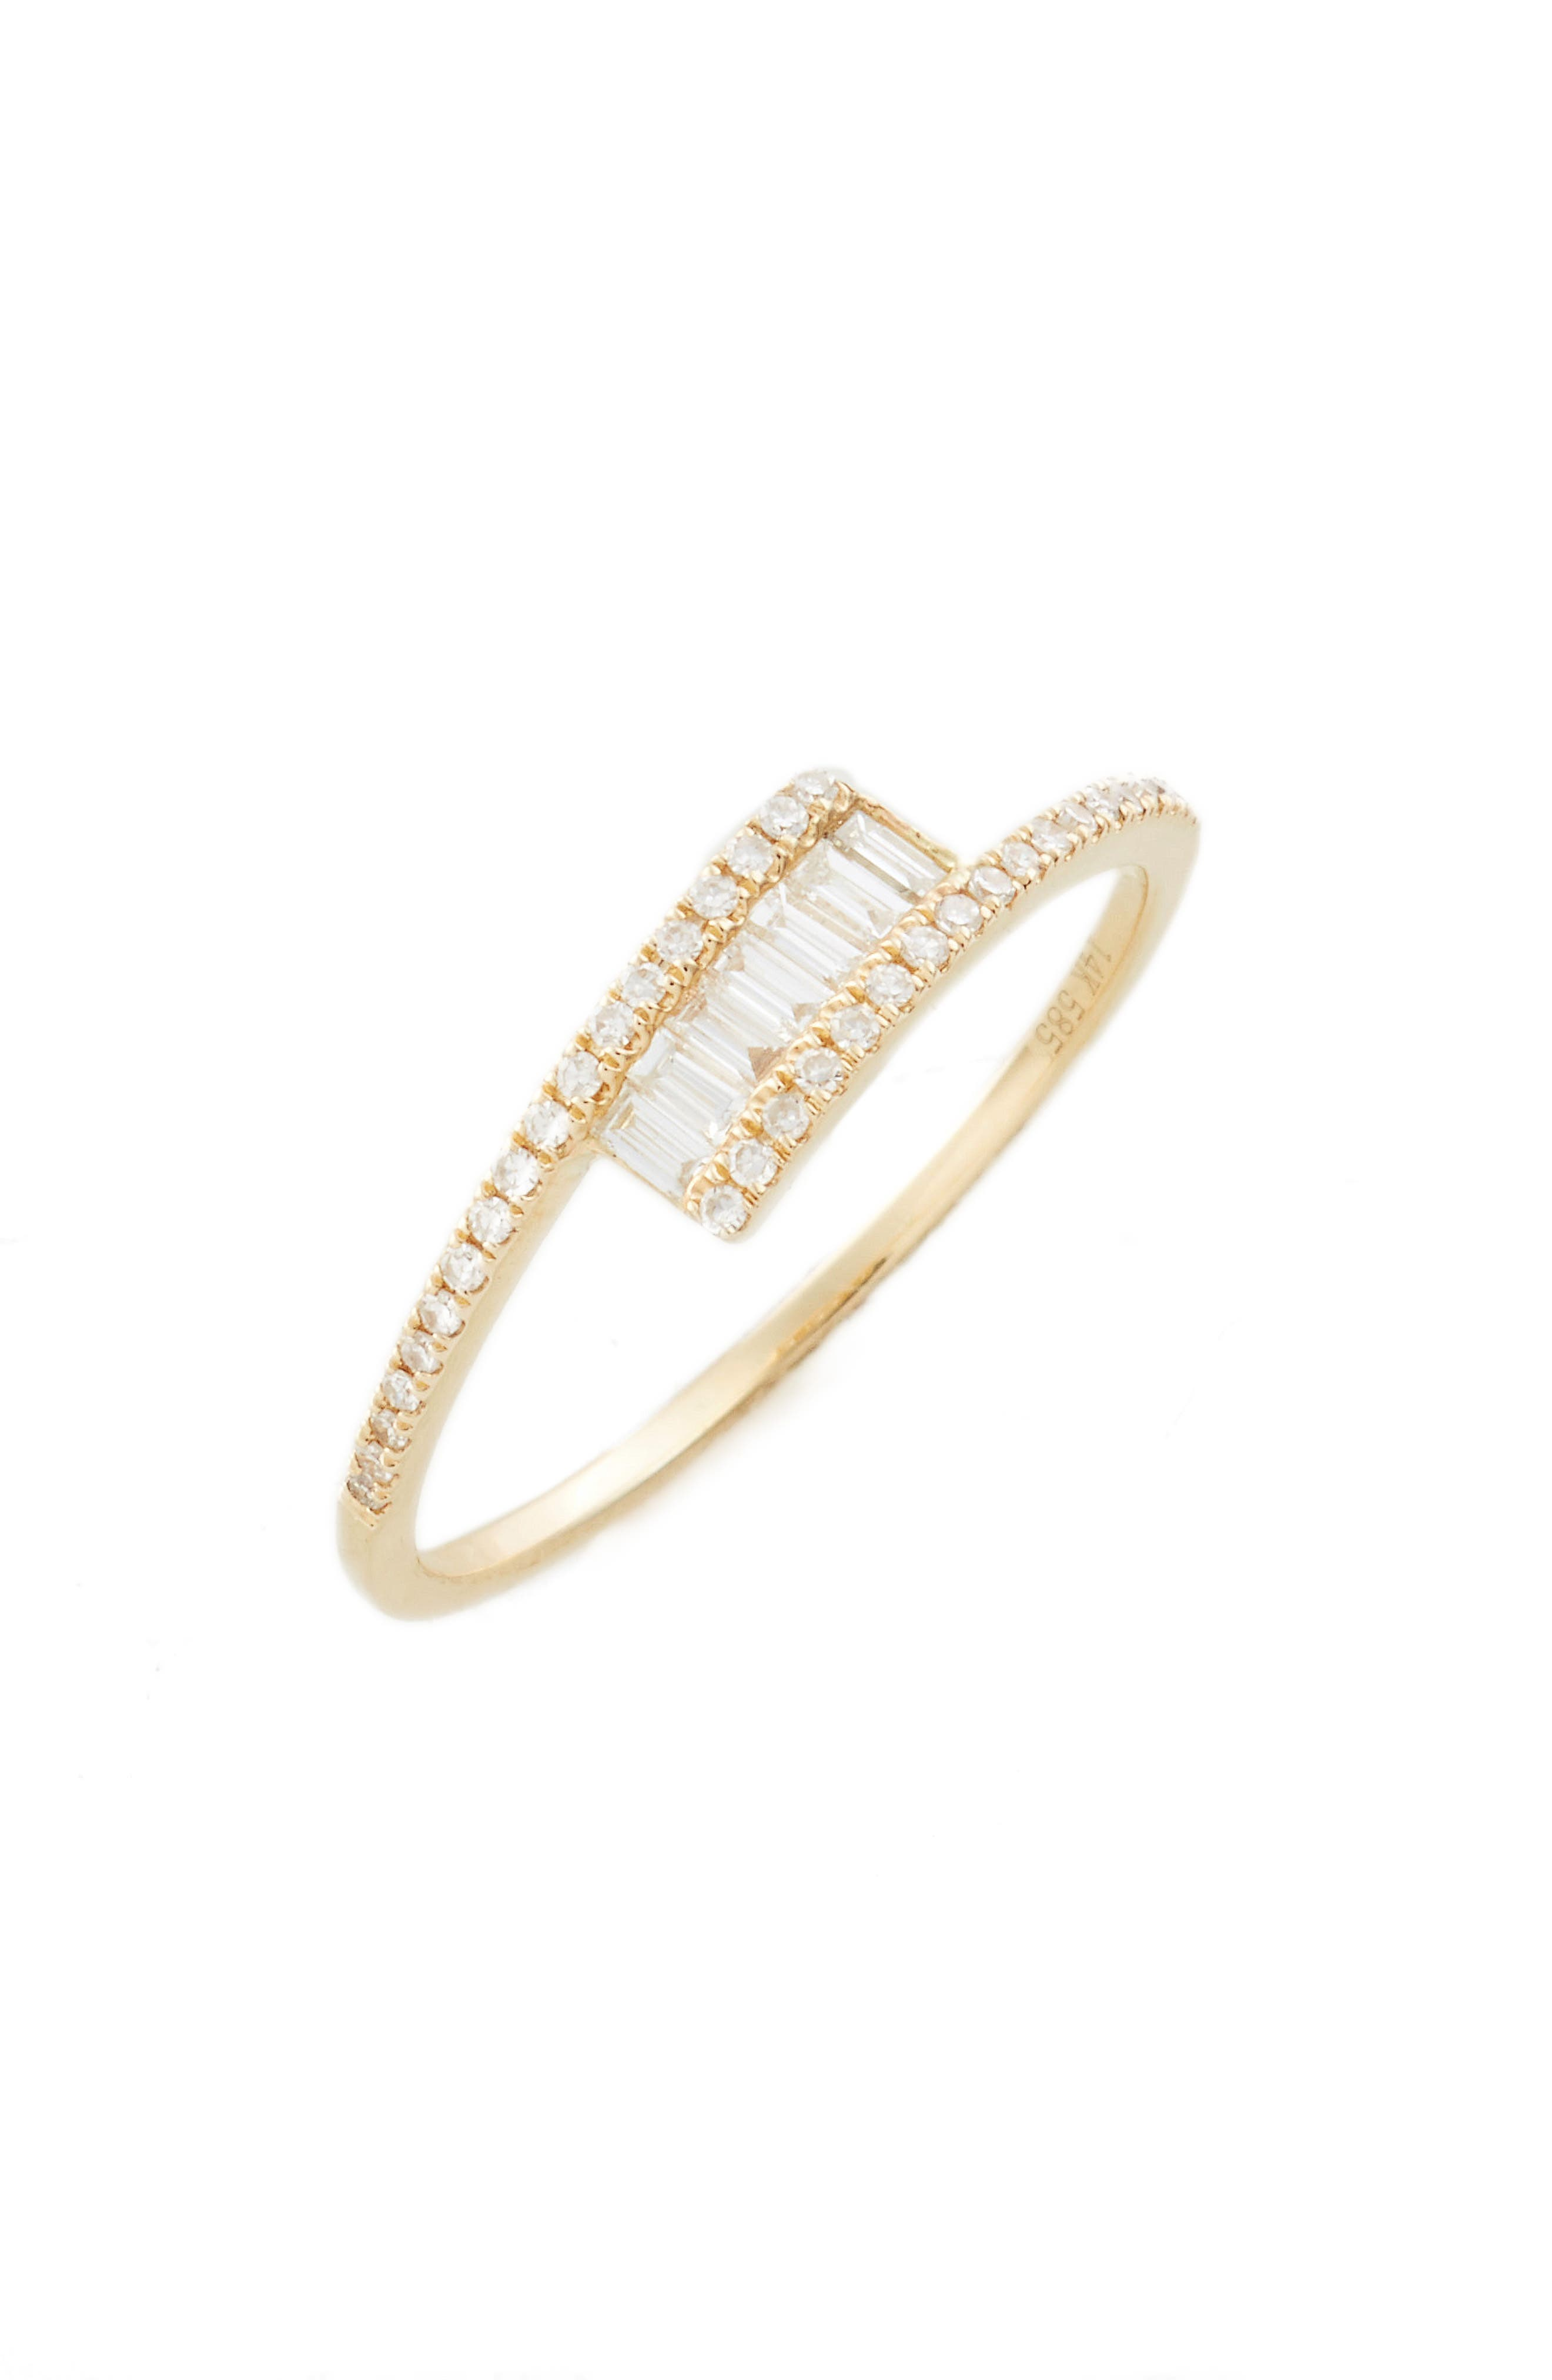 EF COLLECTION Baguette Diamond Ring